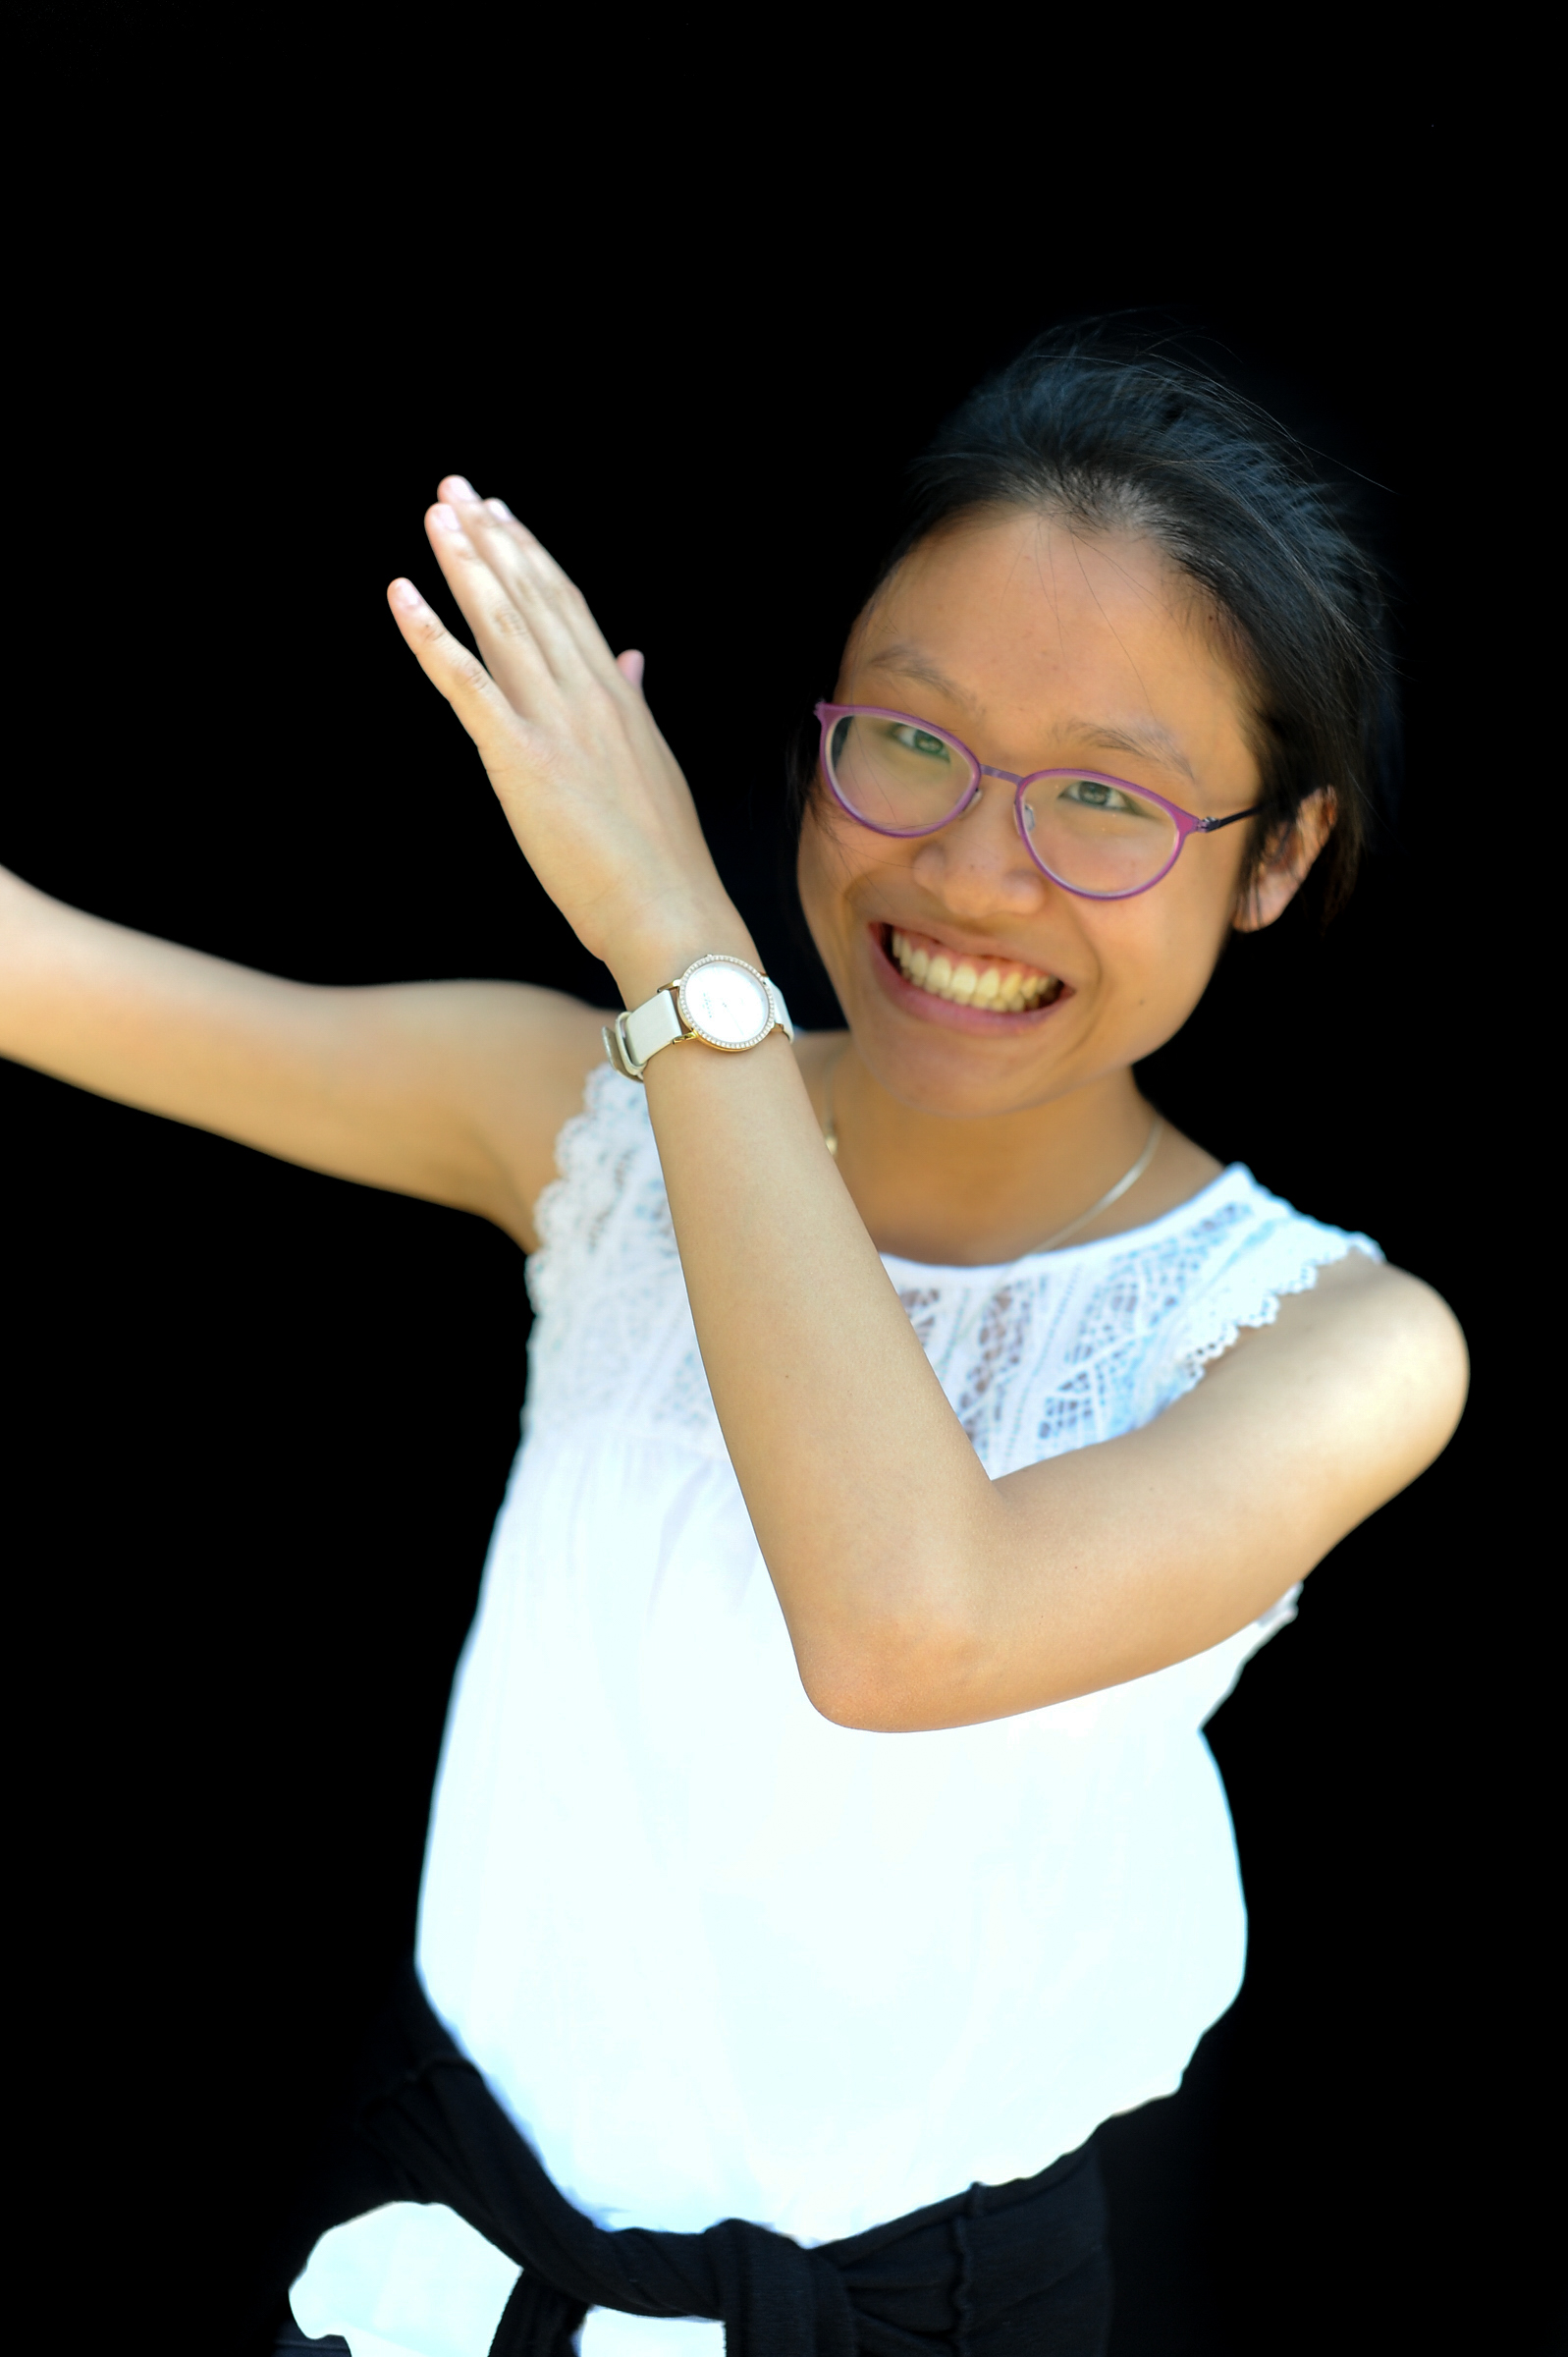 Name: Kimberly GuoClass Year: 2019Major: Computer ScienceHometown: New York City, NYActivities: Anabel's Grocery, WICCIf you could make up a major, what would it be?: Meme-ologyWhy would you be on the front page of The Cornell Daily Sun?: For being the first CS/Meme-ology double majorBlurb: Keep calm and Pusheen on!! ^__^